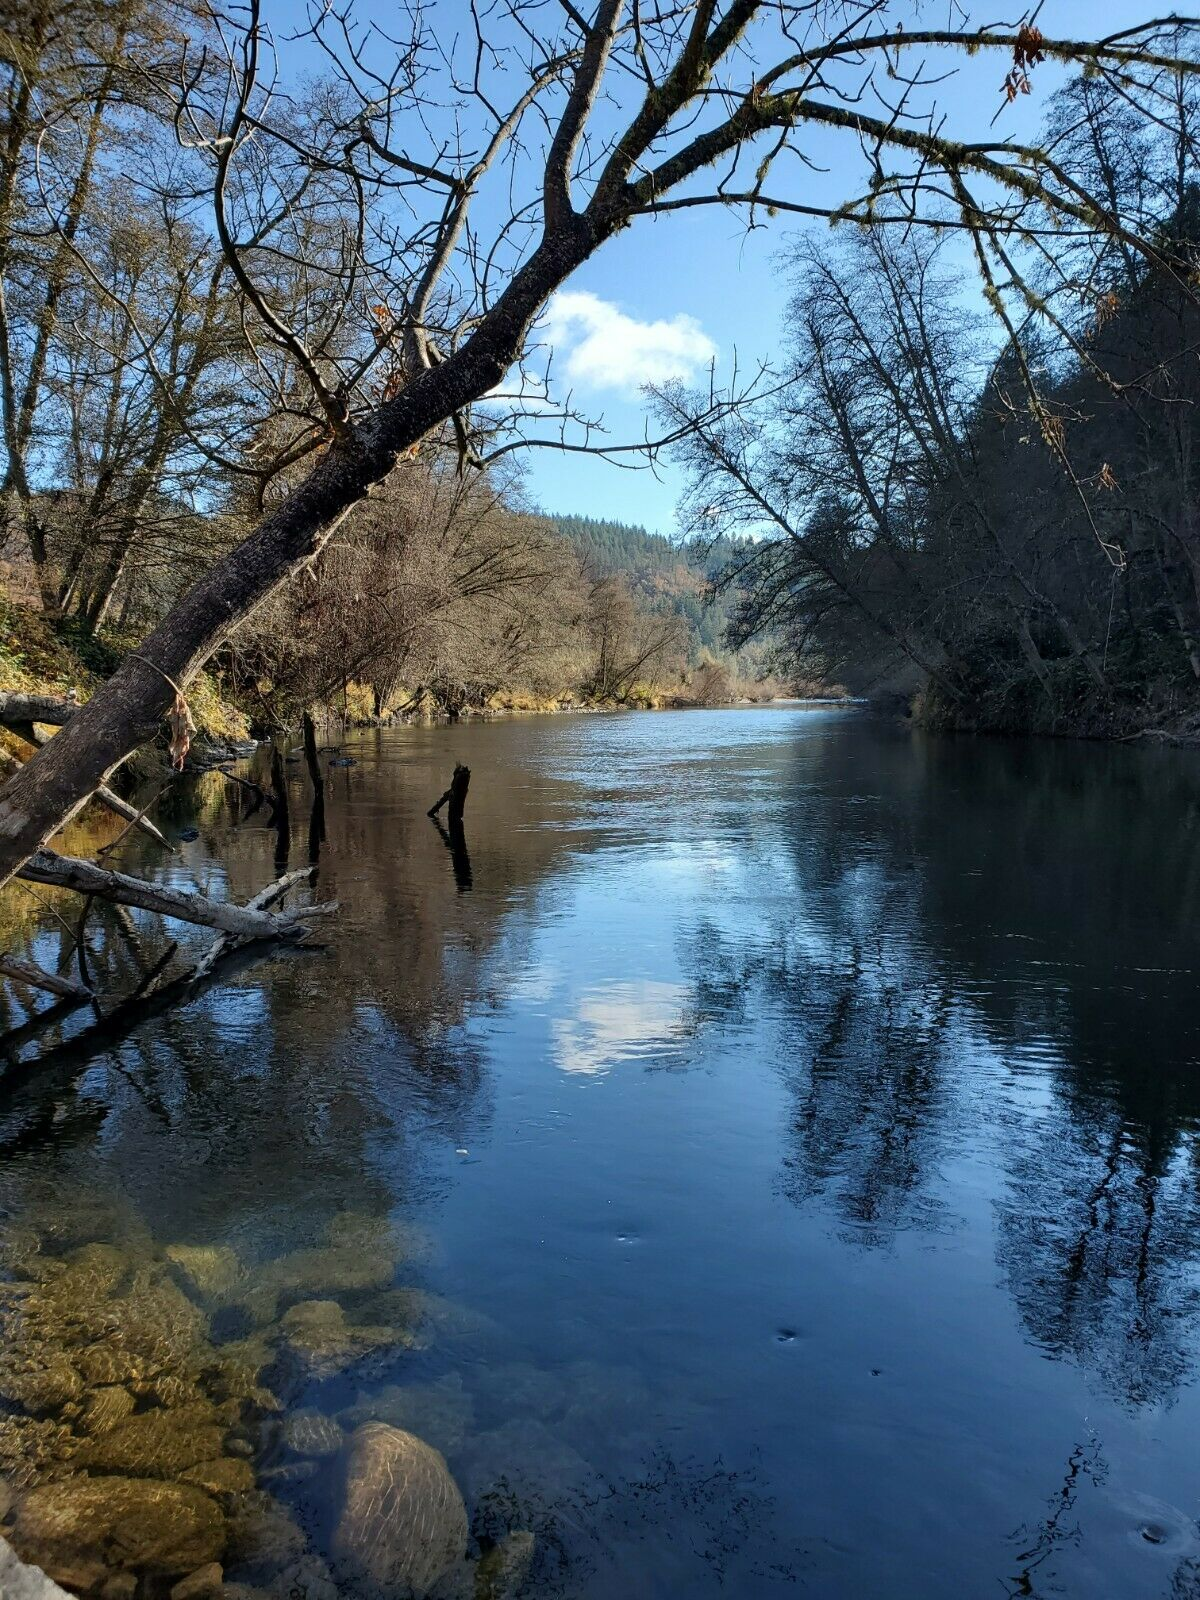 20 ACRE GOLD MINING CLAIM - Trinity River. Douglas City, CALIFORNIA Unpatented